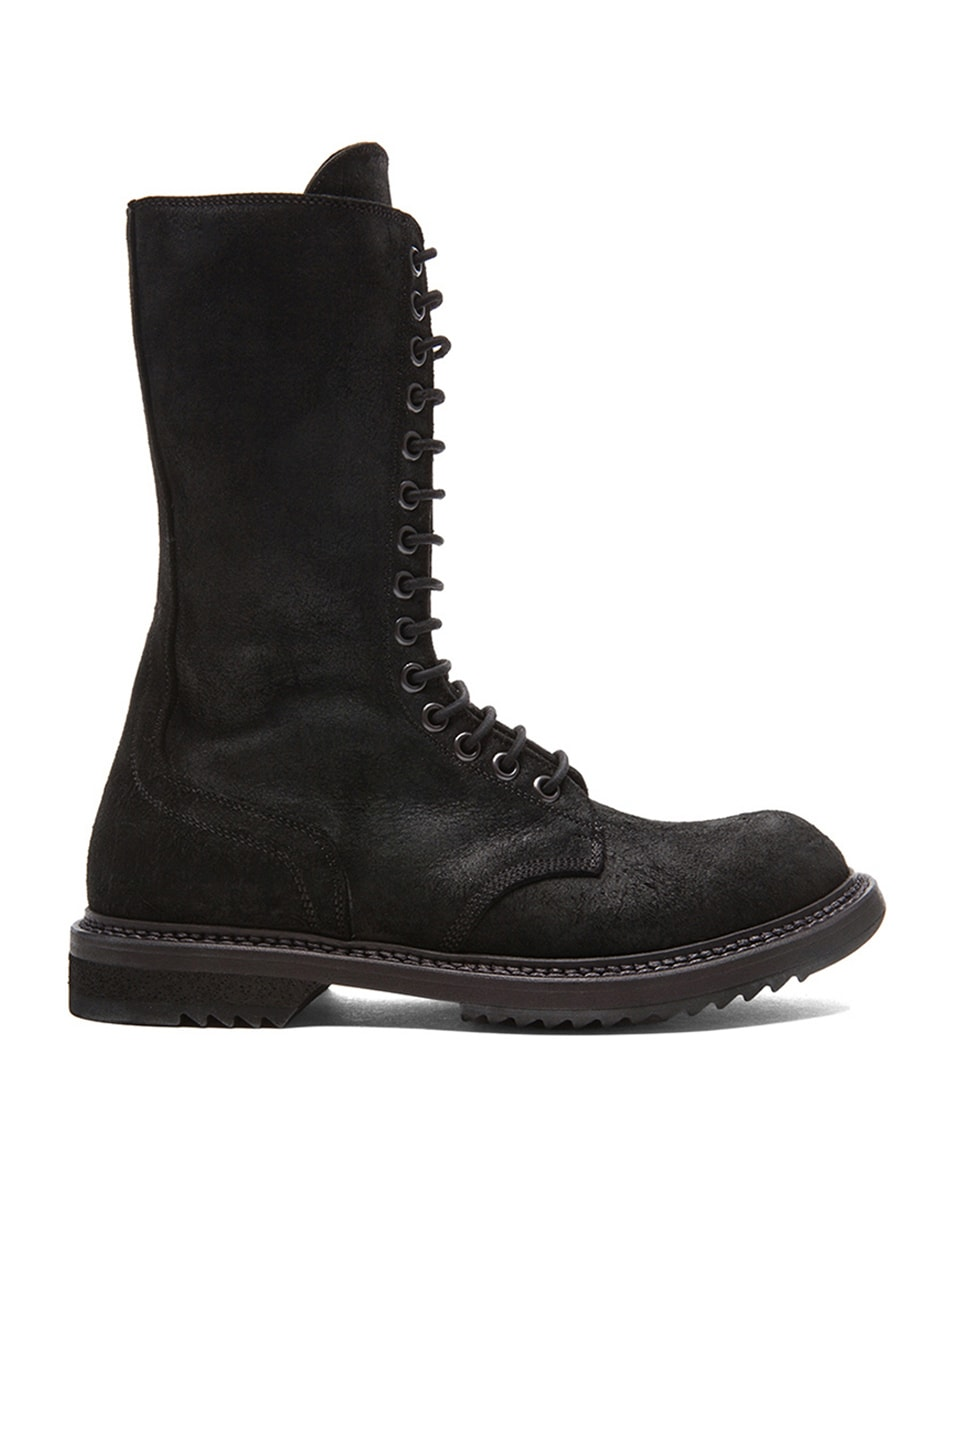 Image 1 of Rick Owens Army Leather Boots in Black